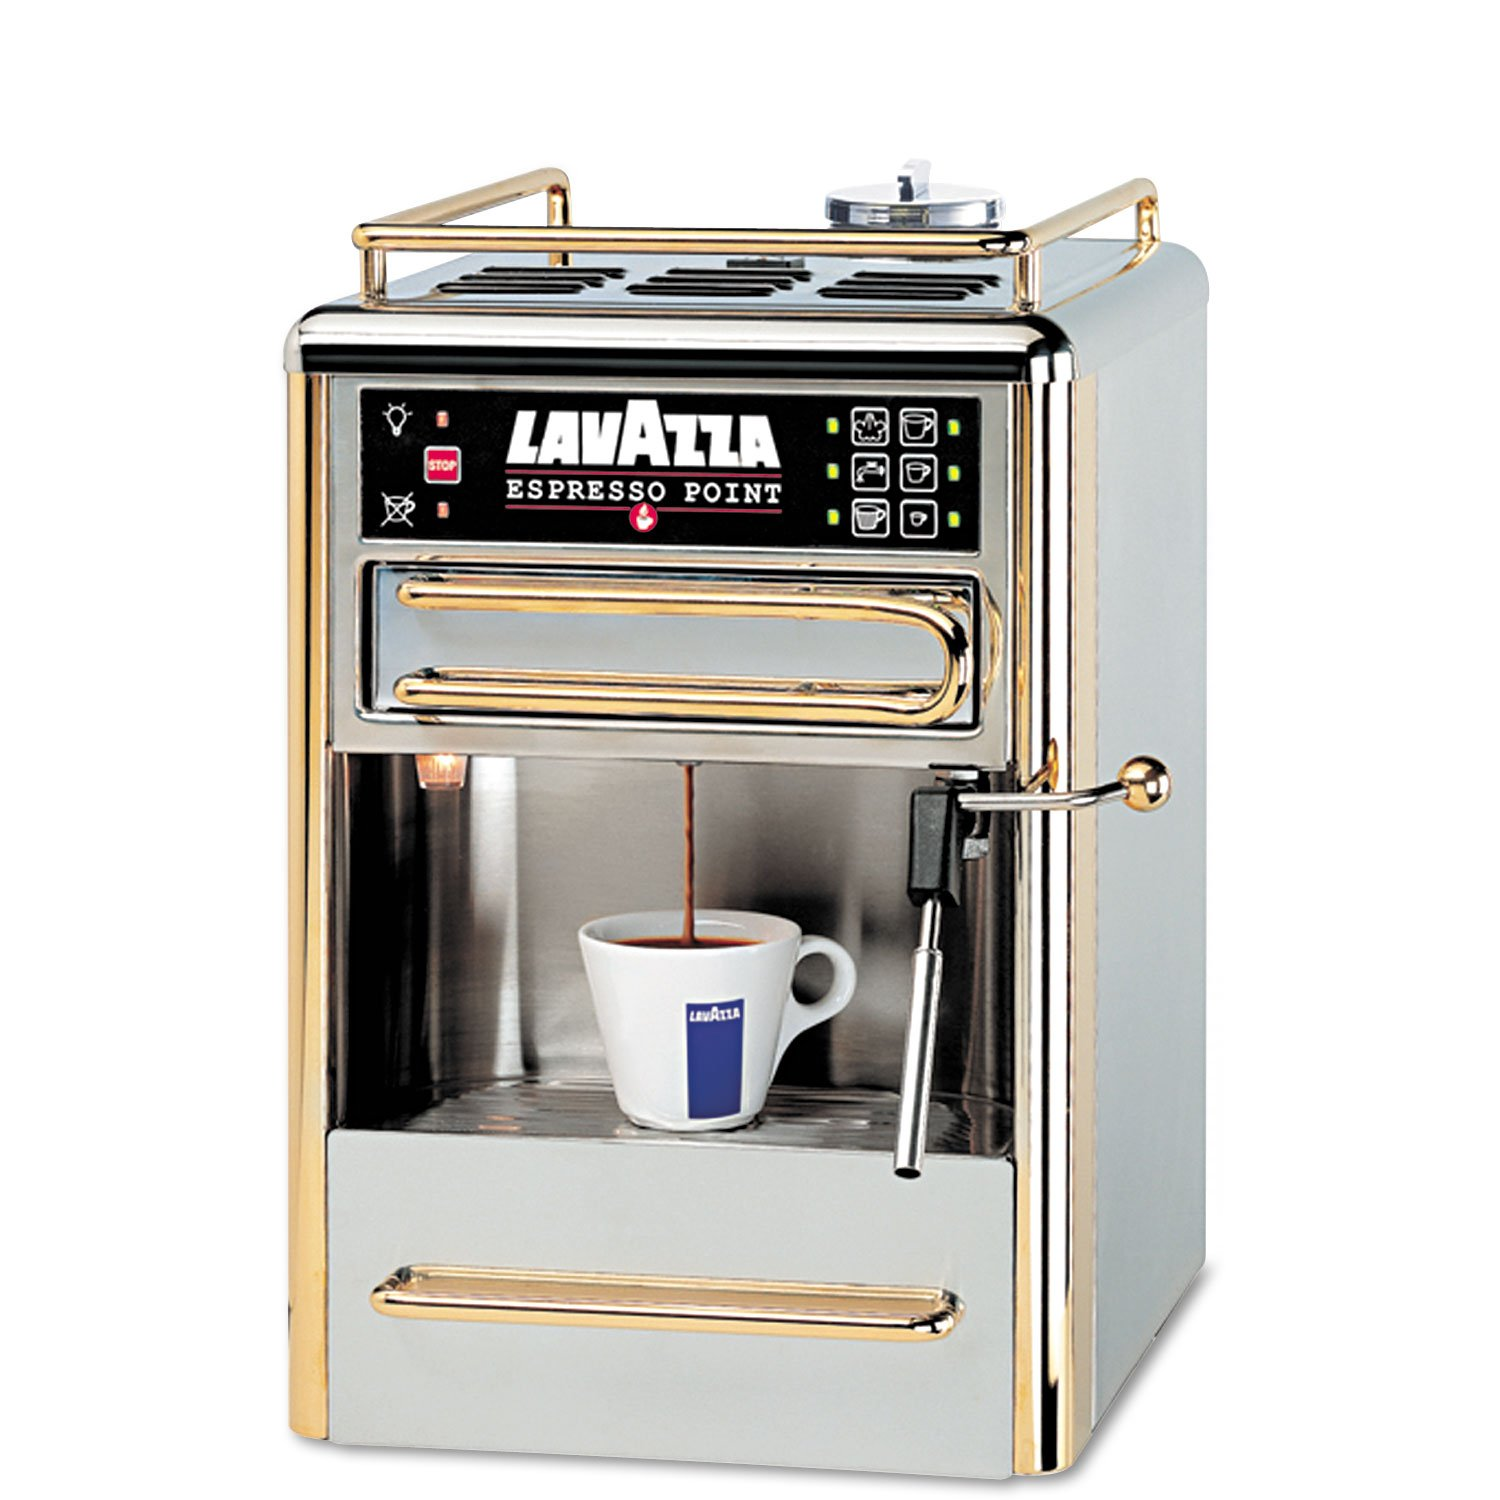 LAV80114 - One-Cup Espresso Beverage System